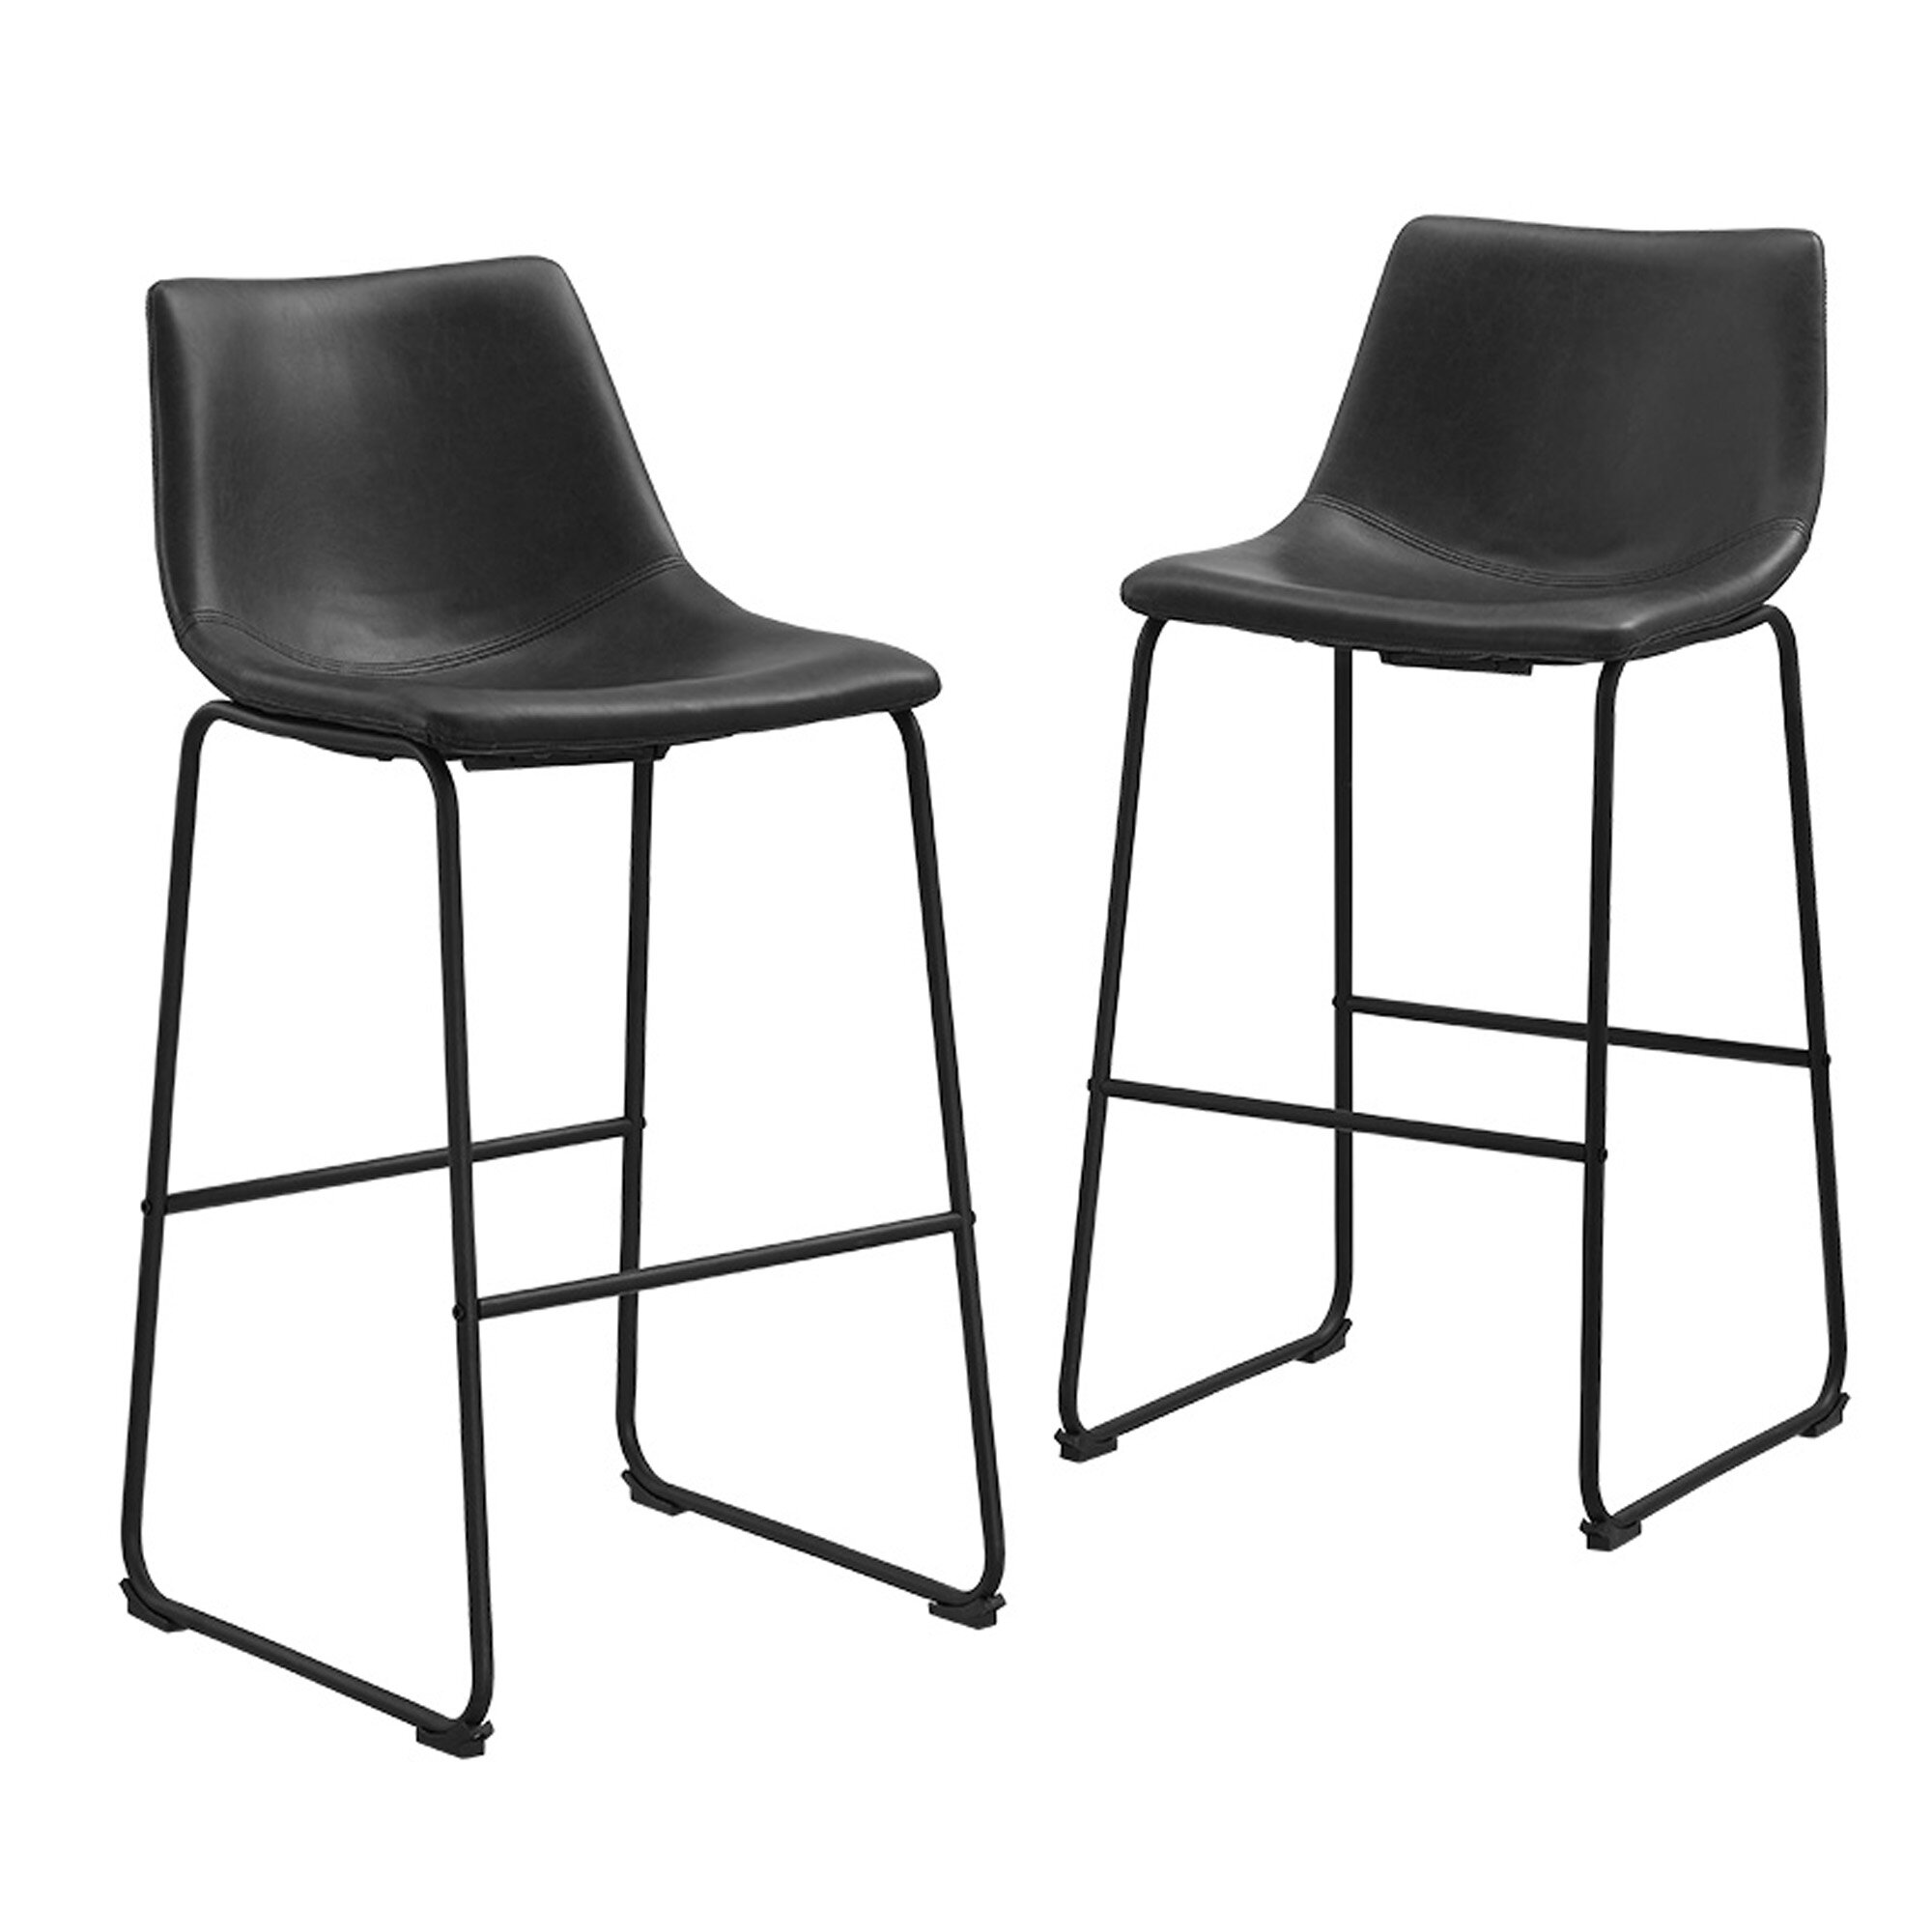 "Contemporary Furniture And Stools: Laurel Foundry Modern Farmhouse Ashley 30"" Bar Stool"